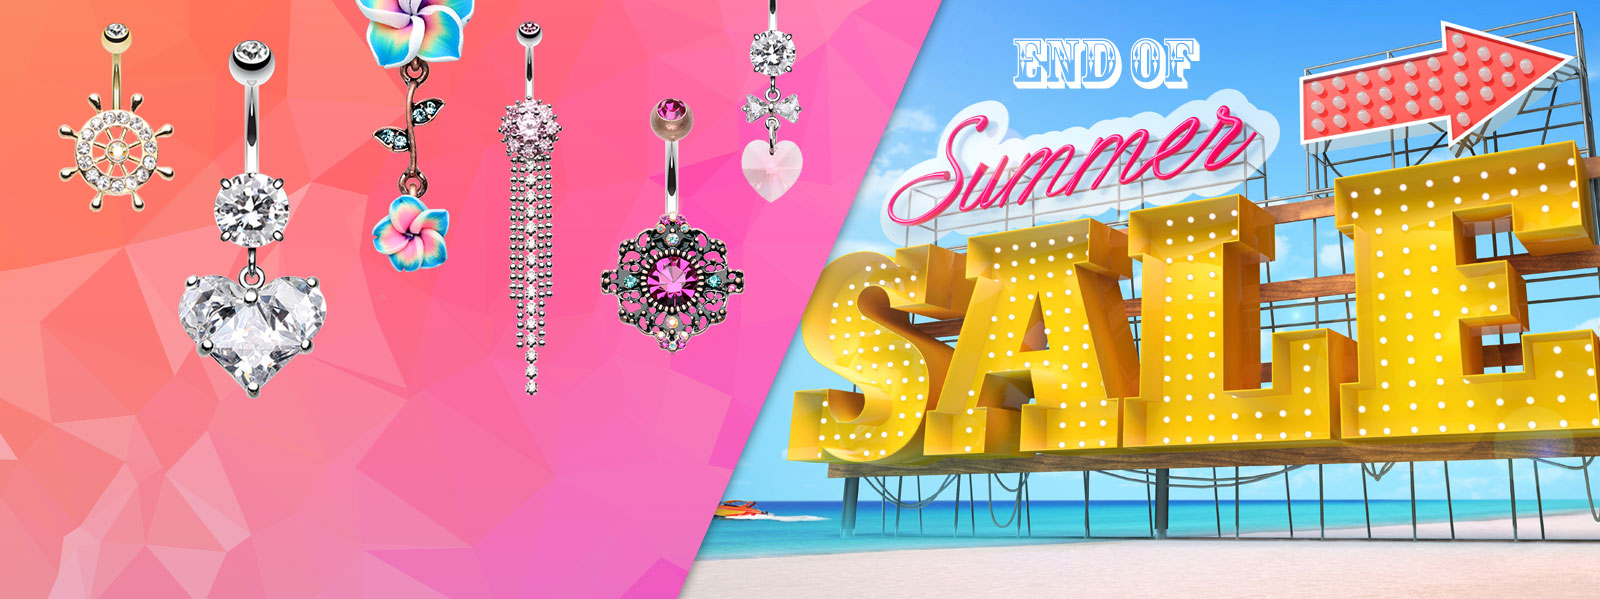 End of Summer Belly Ring Sale